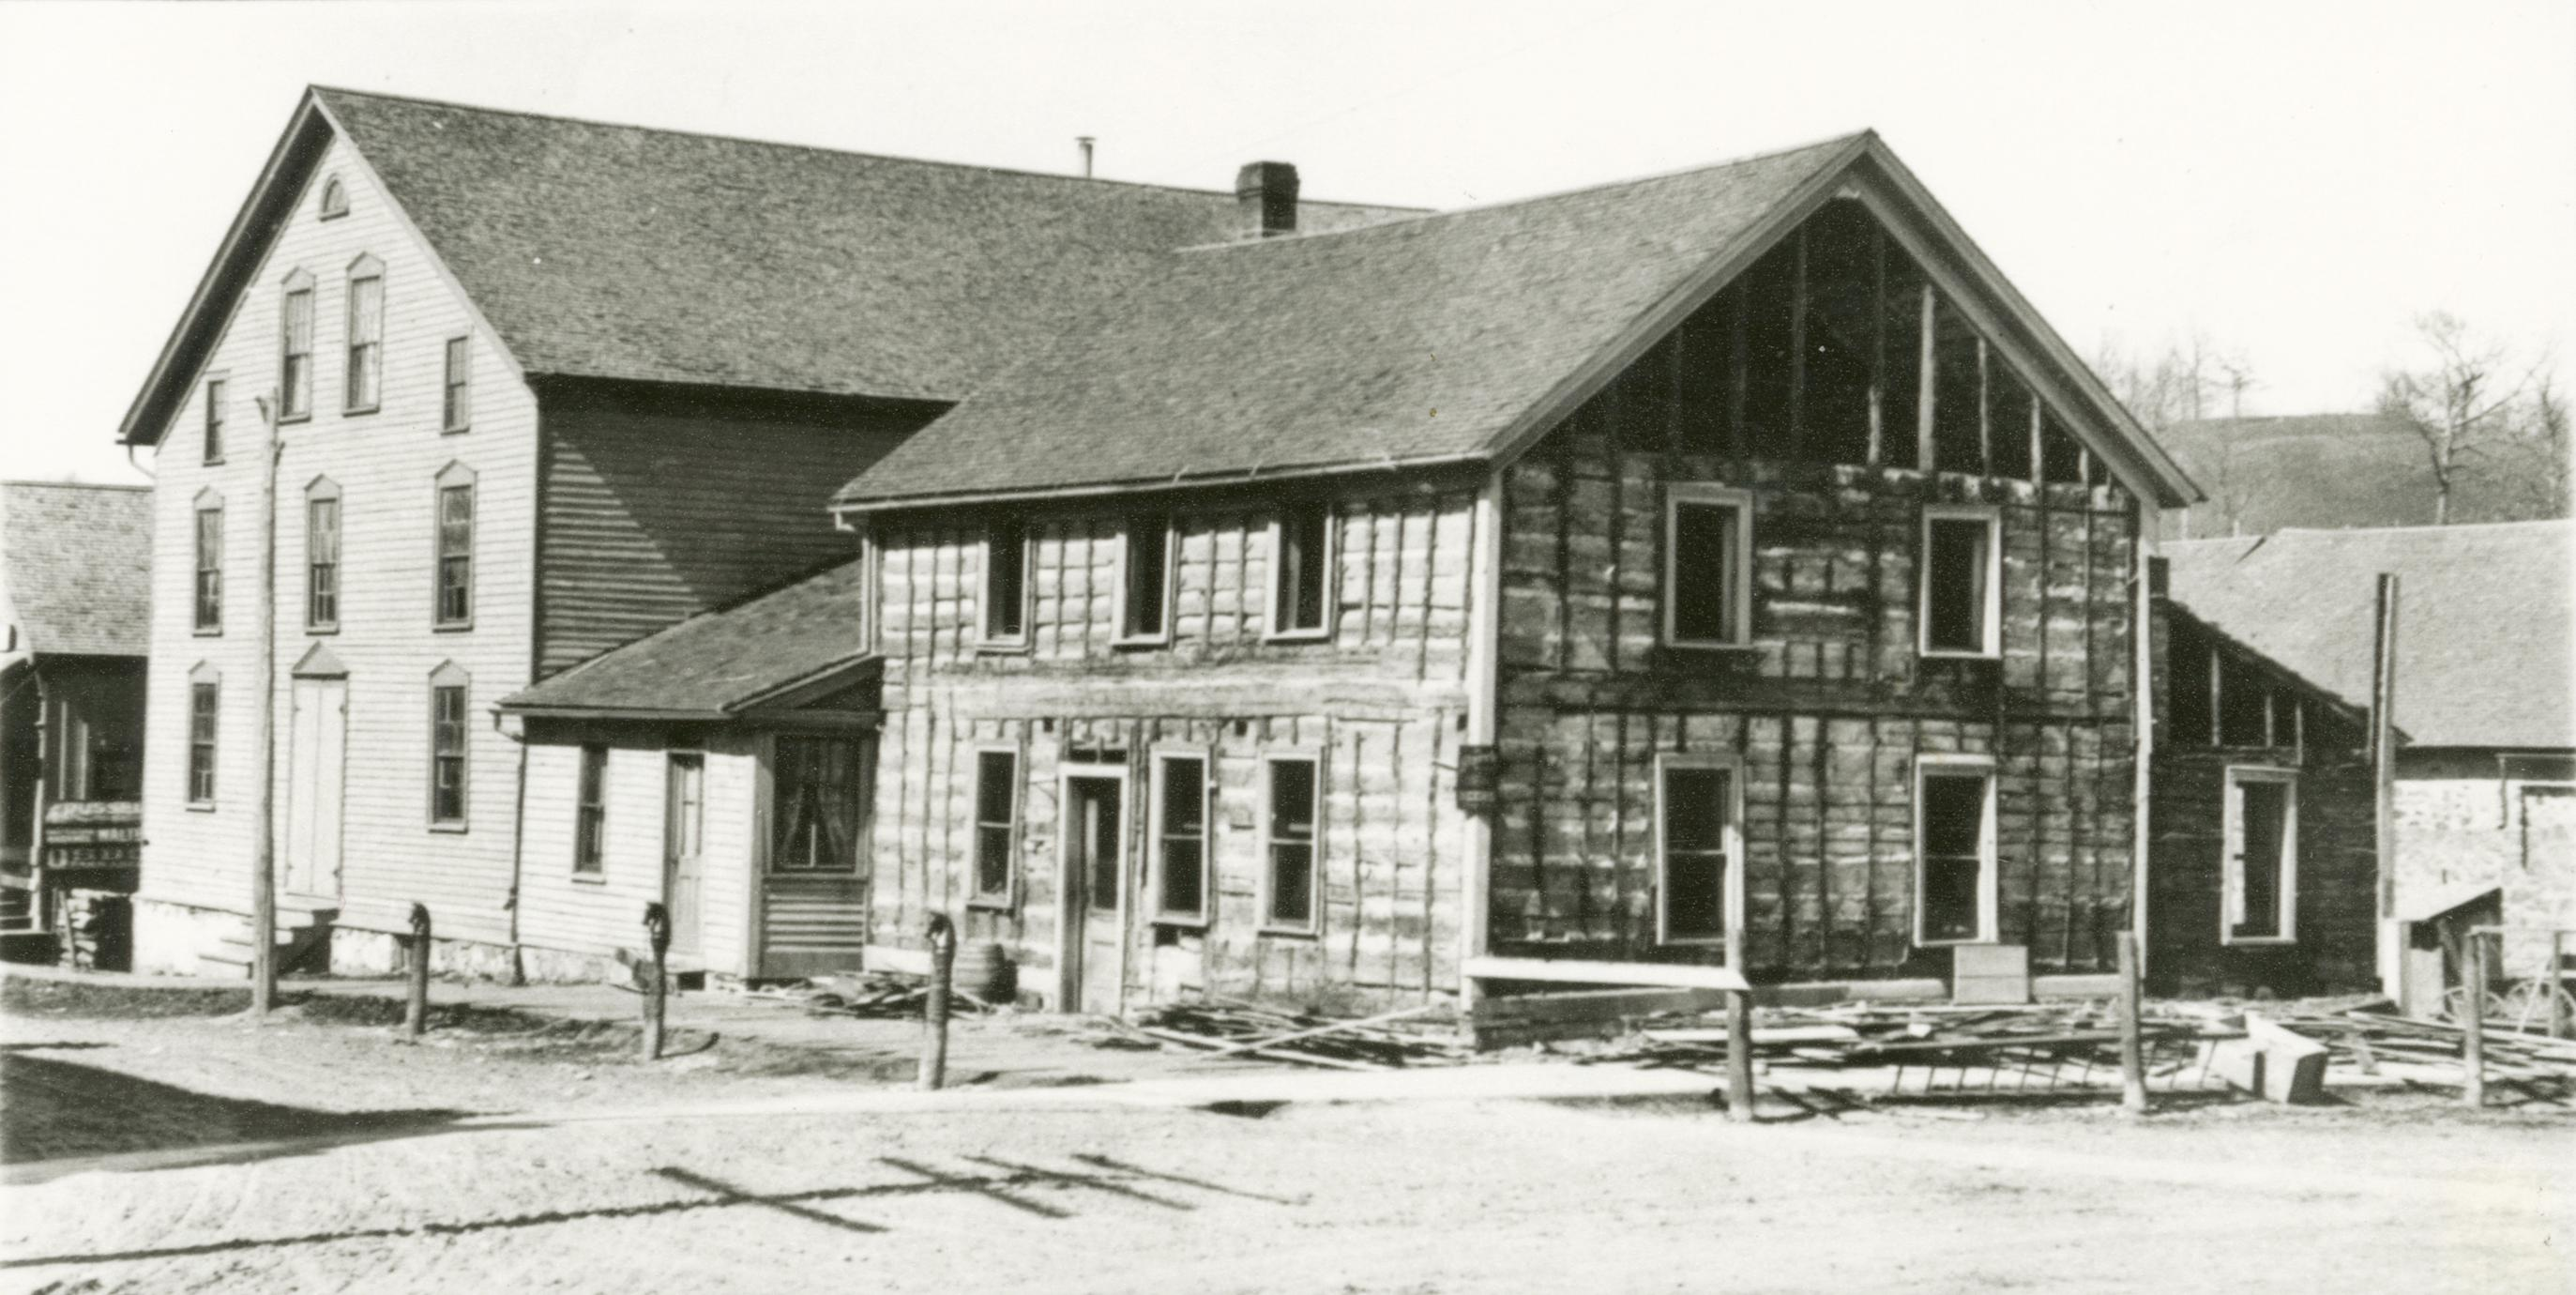 Roth's Old Farmer's Home